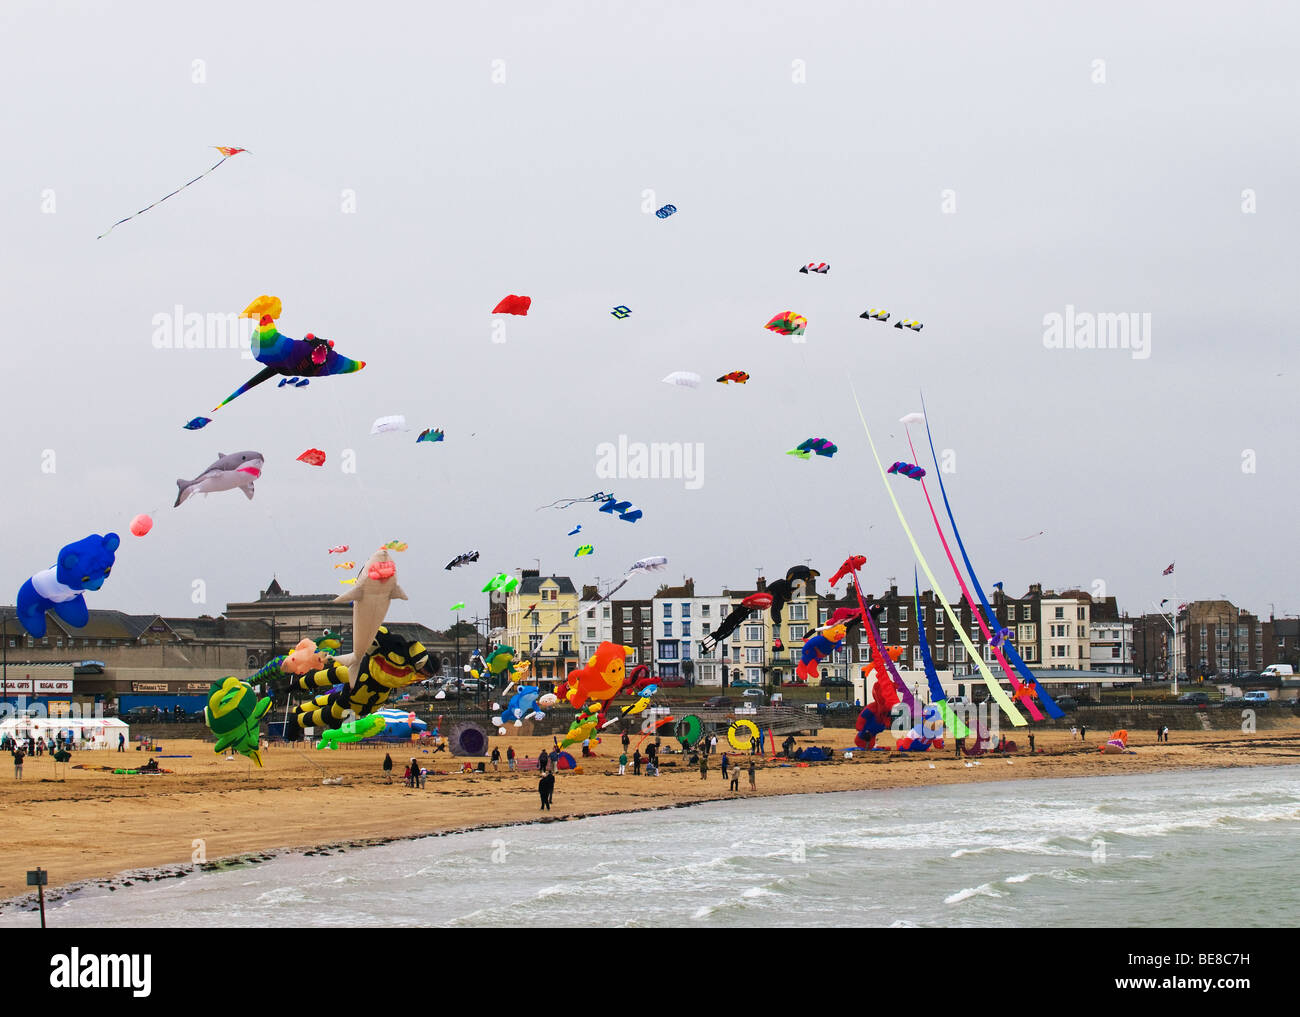 A kite festival on the beach at Margate in Kent. - Stock Image